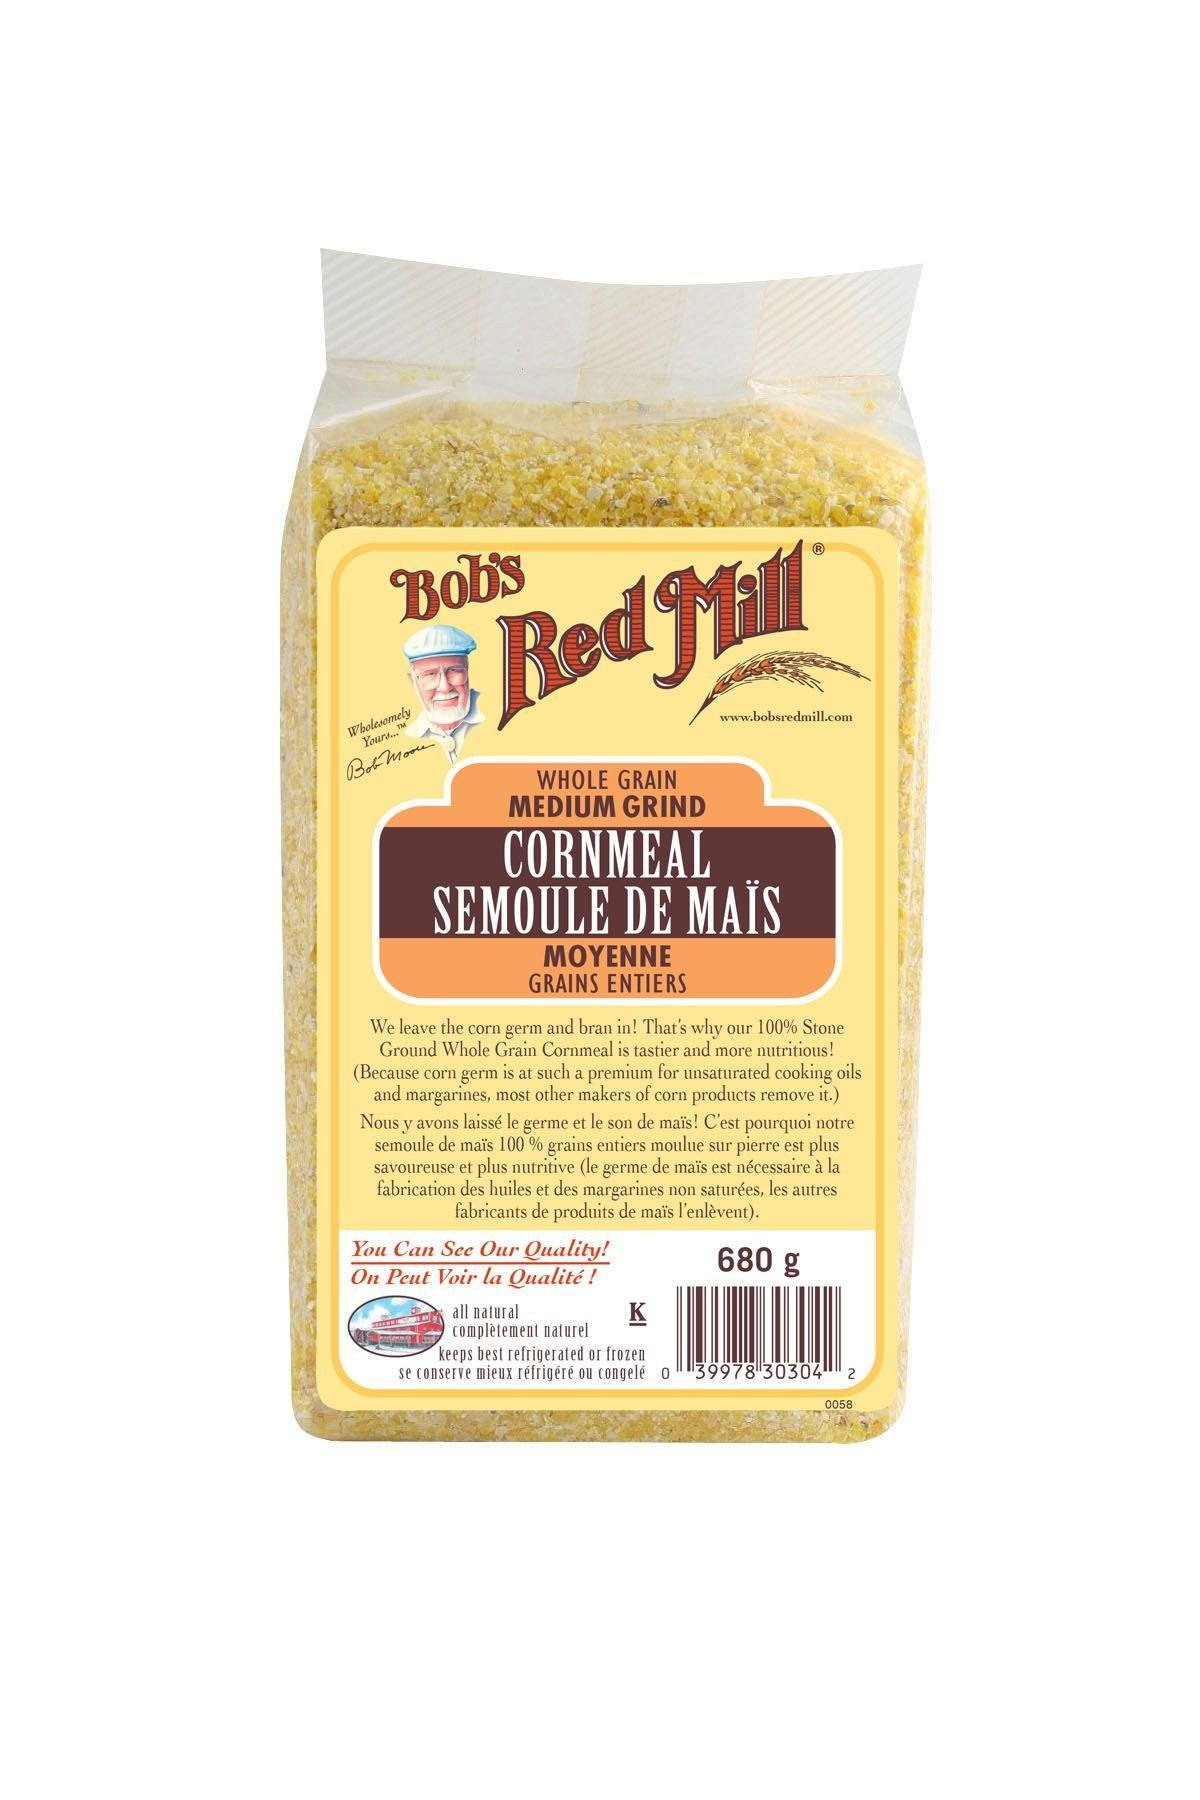 Food & Drink - Bob's Red Mill - Medium Cornmeal, 680g